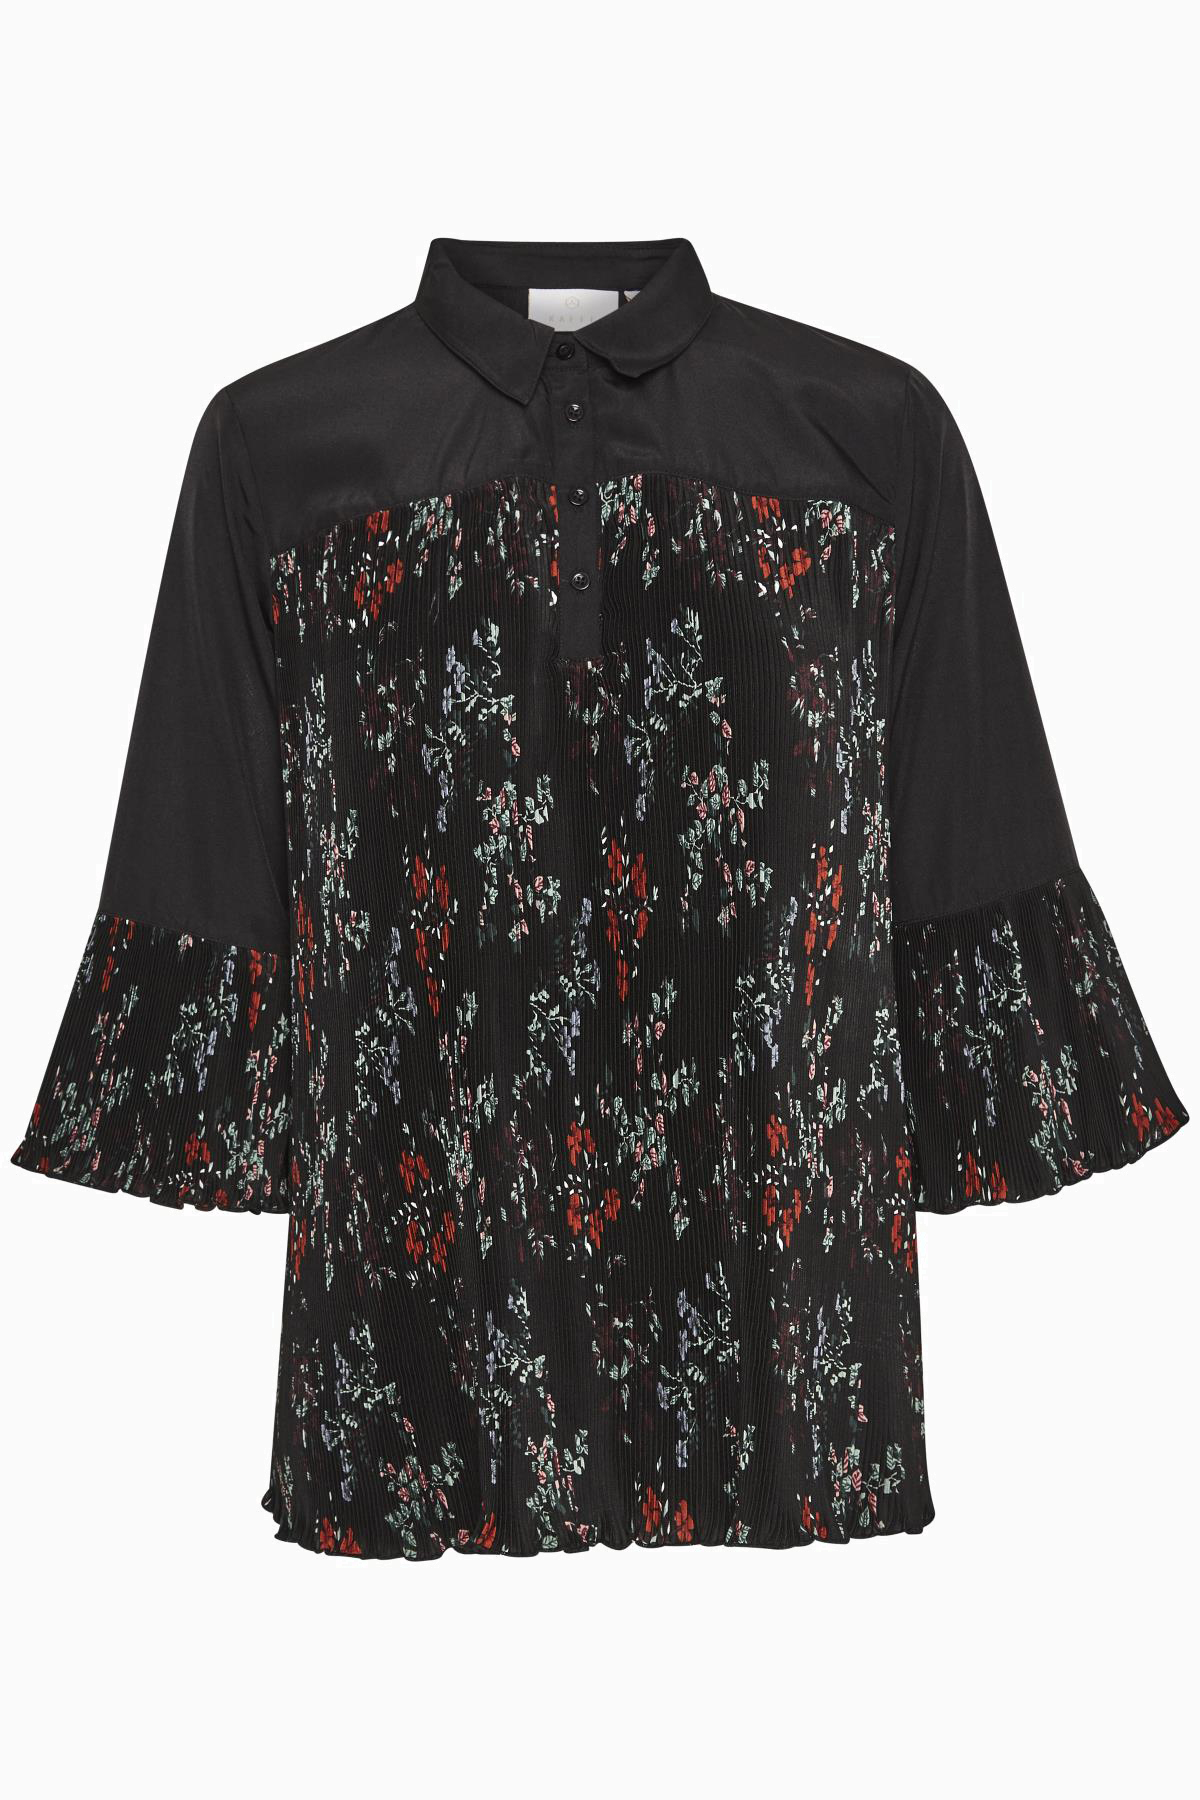 Image of Kaffe Dame Super smart Tonya bluse - Sort/koral